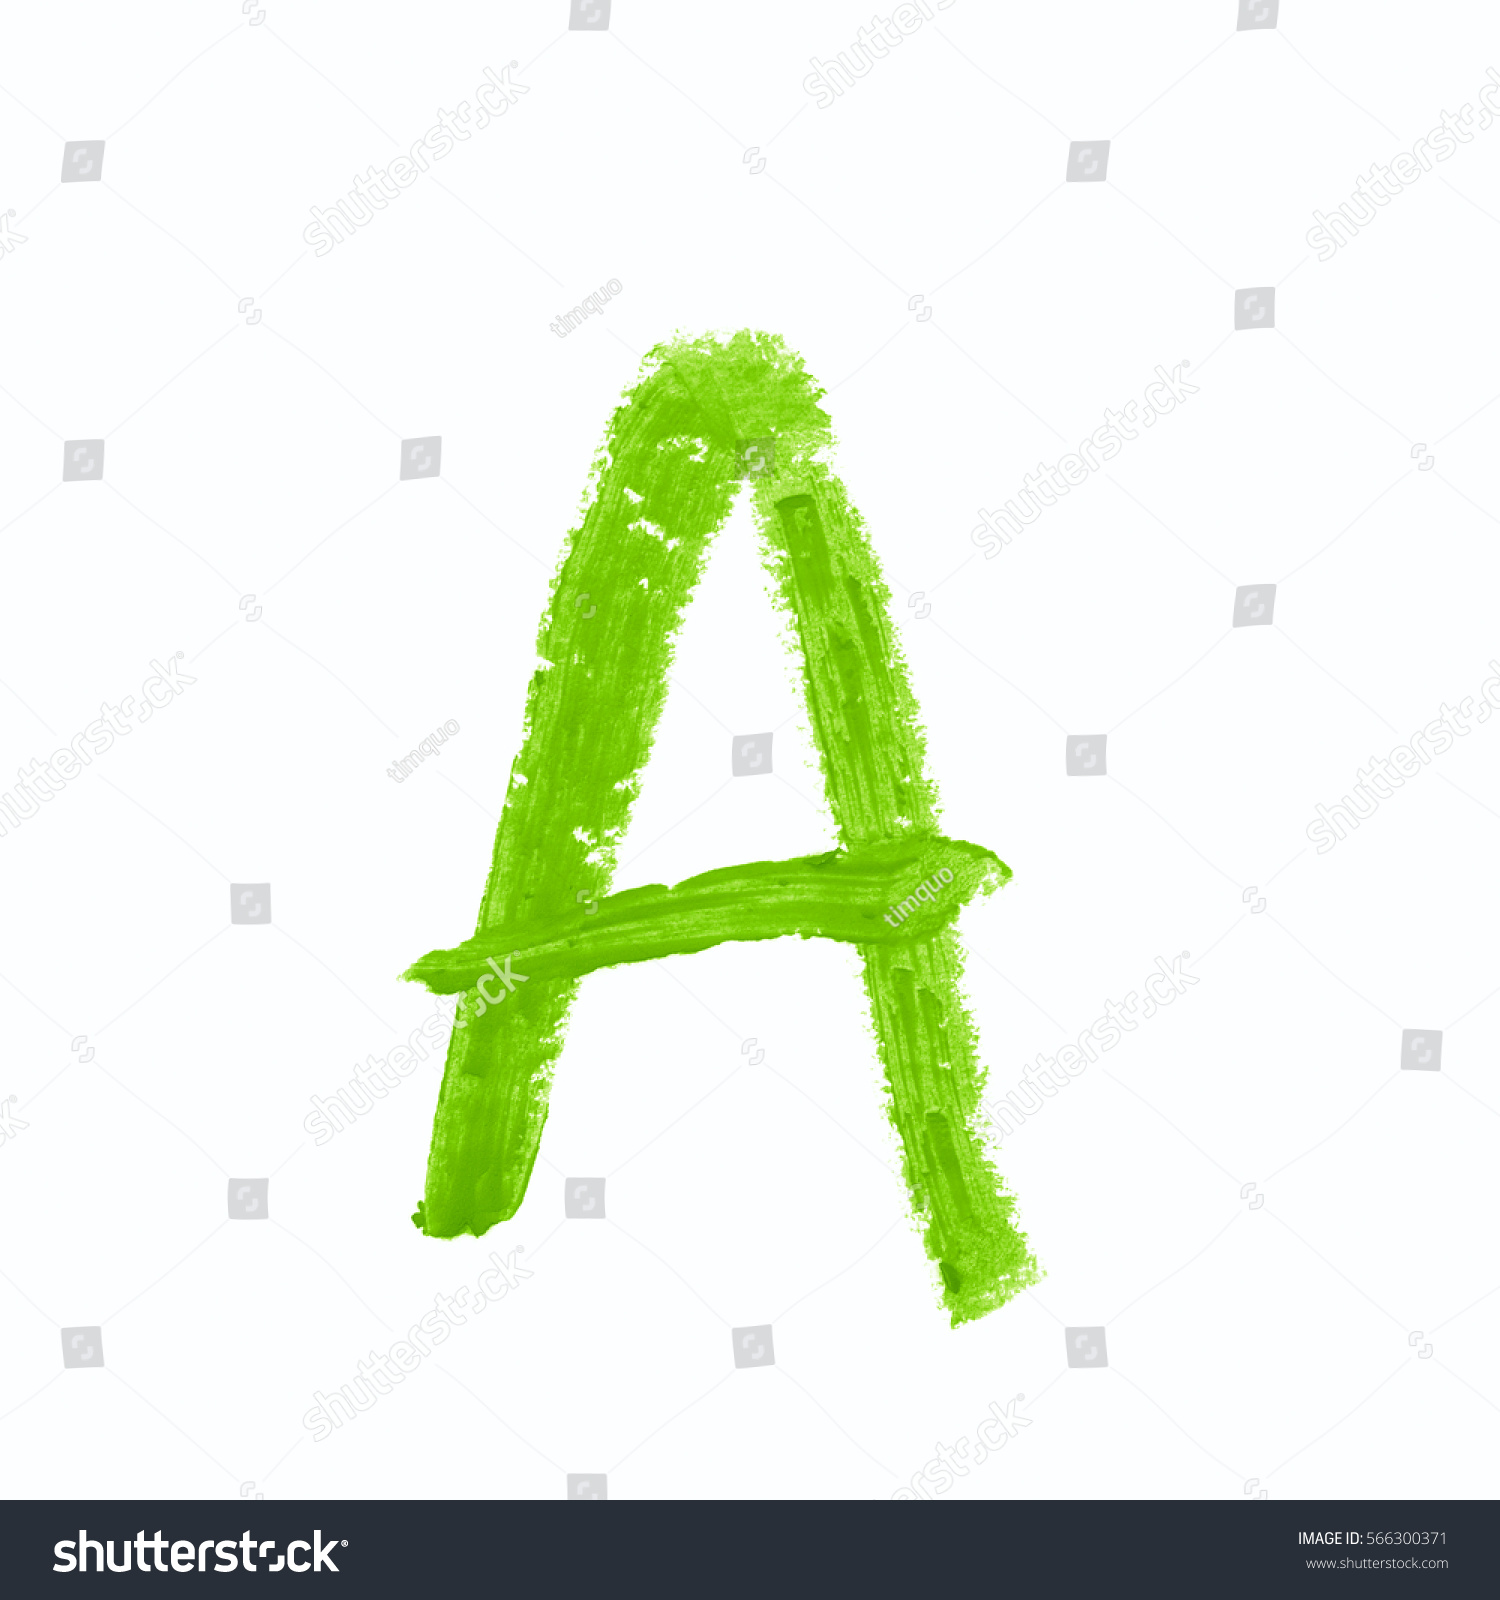 Single Abc Latin Letter Symbol Drawn Stock Photo Image Royalty